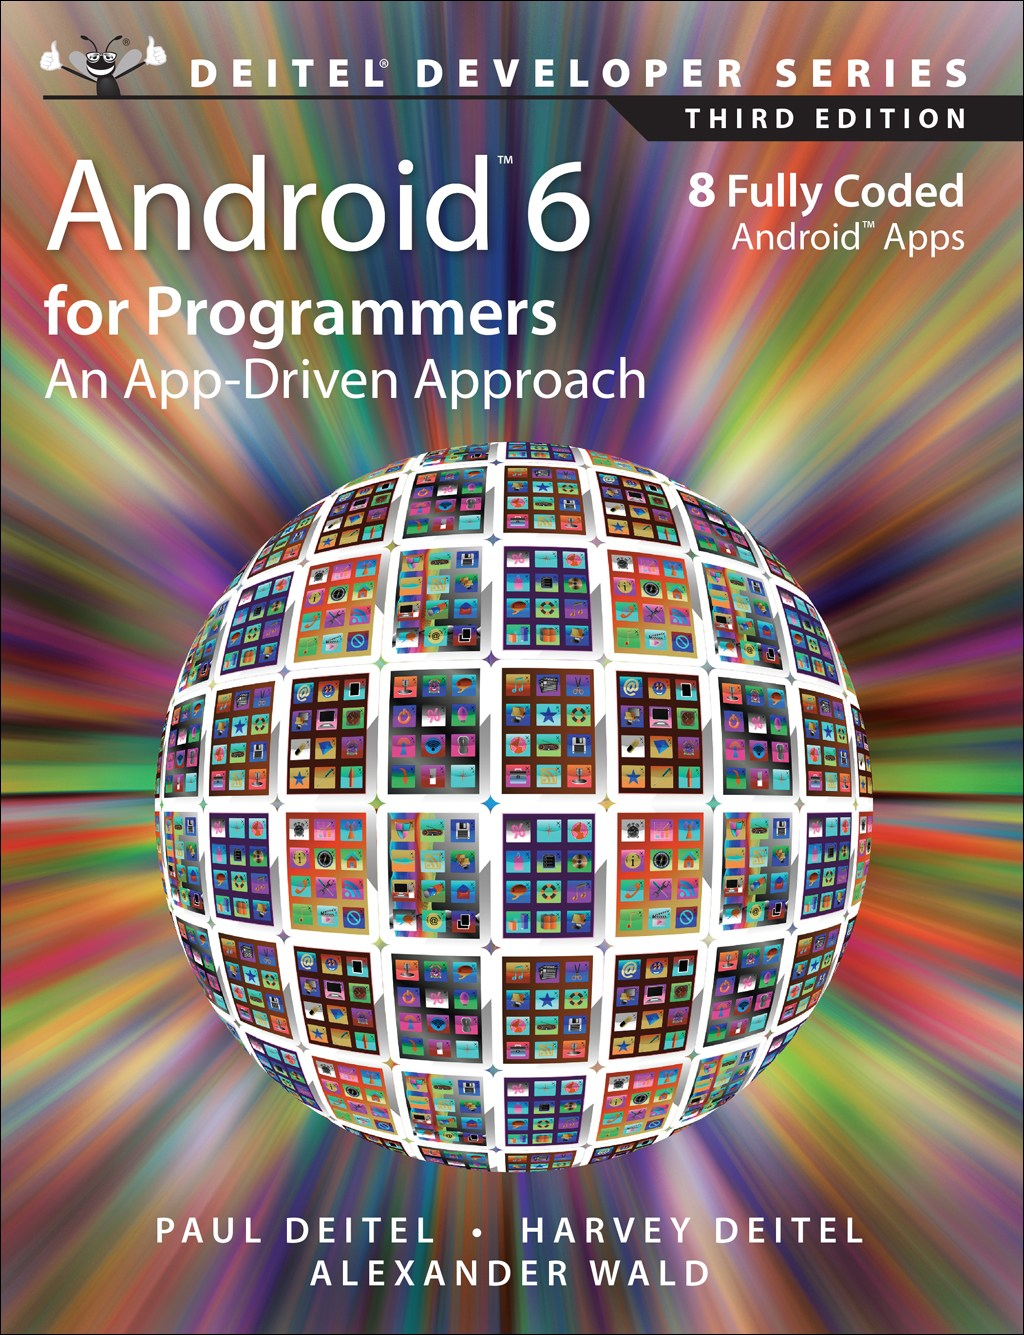 Android 6 for Programmers: An App-Driven Approach, 3rd Edition